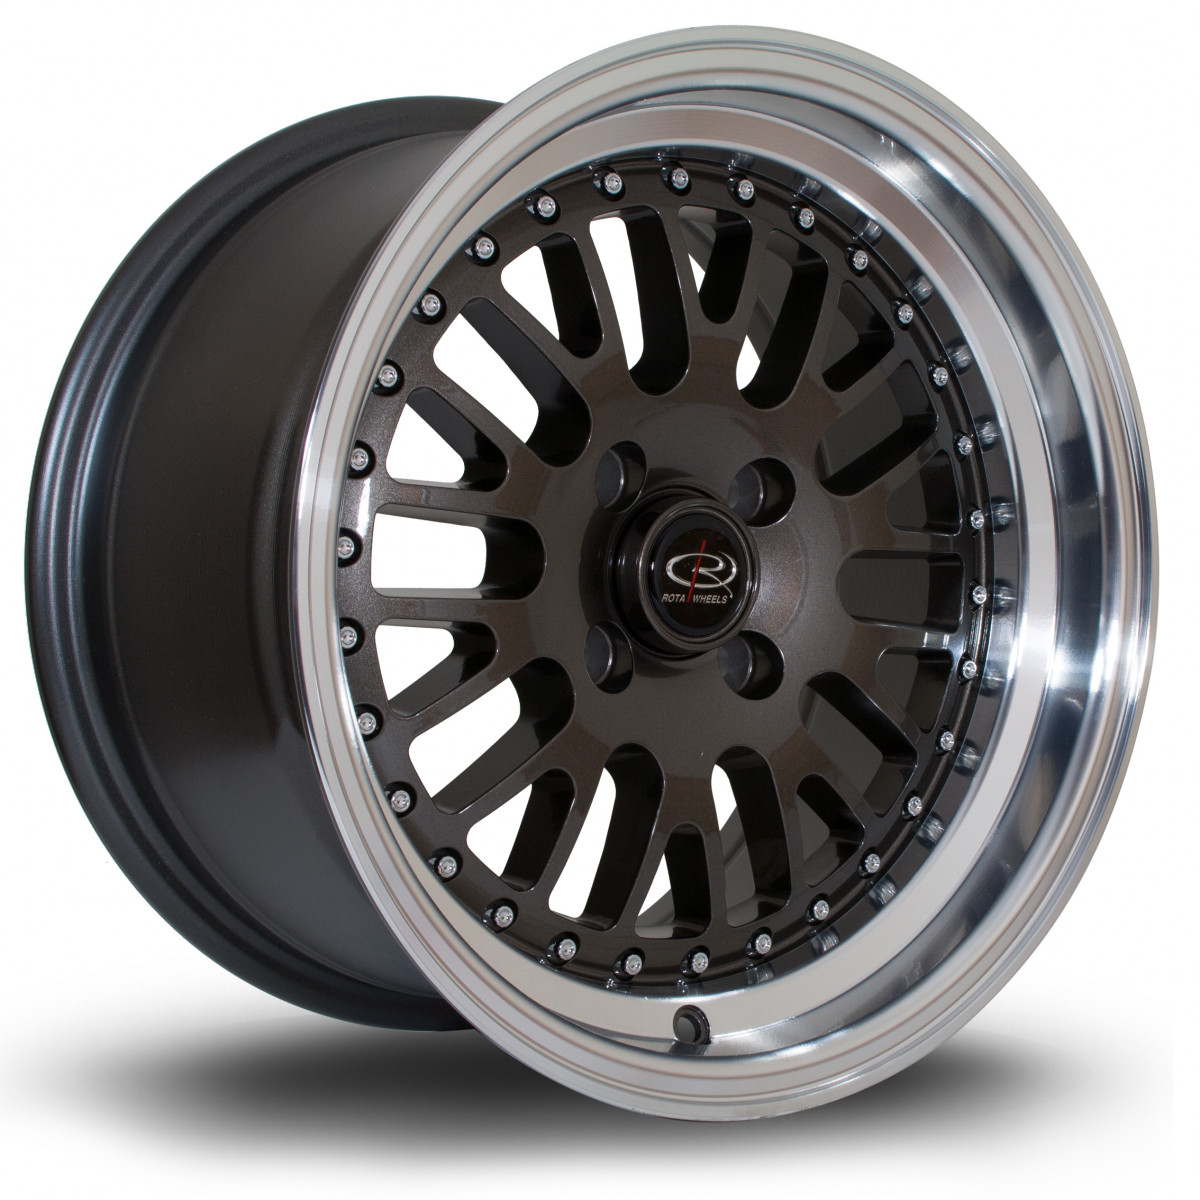 Flush 15x8 4x100 ET20 Gunmetal with Polished Lip